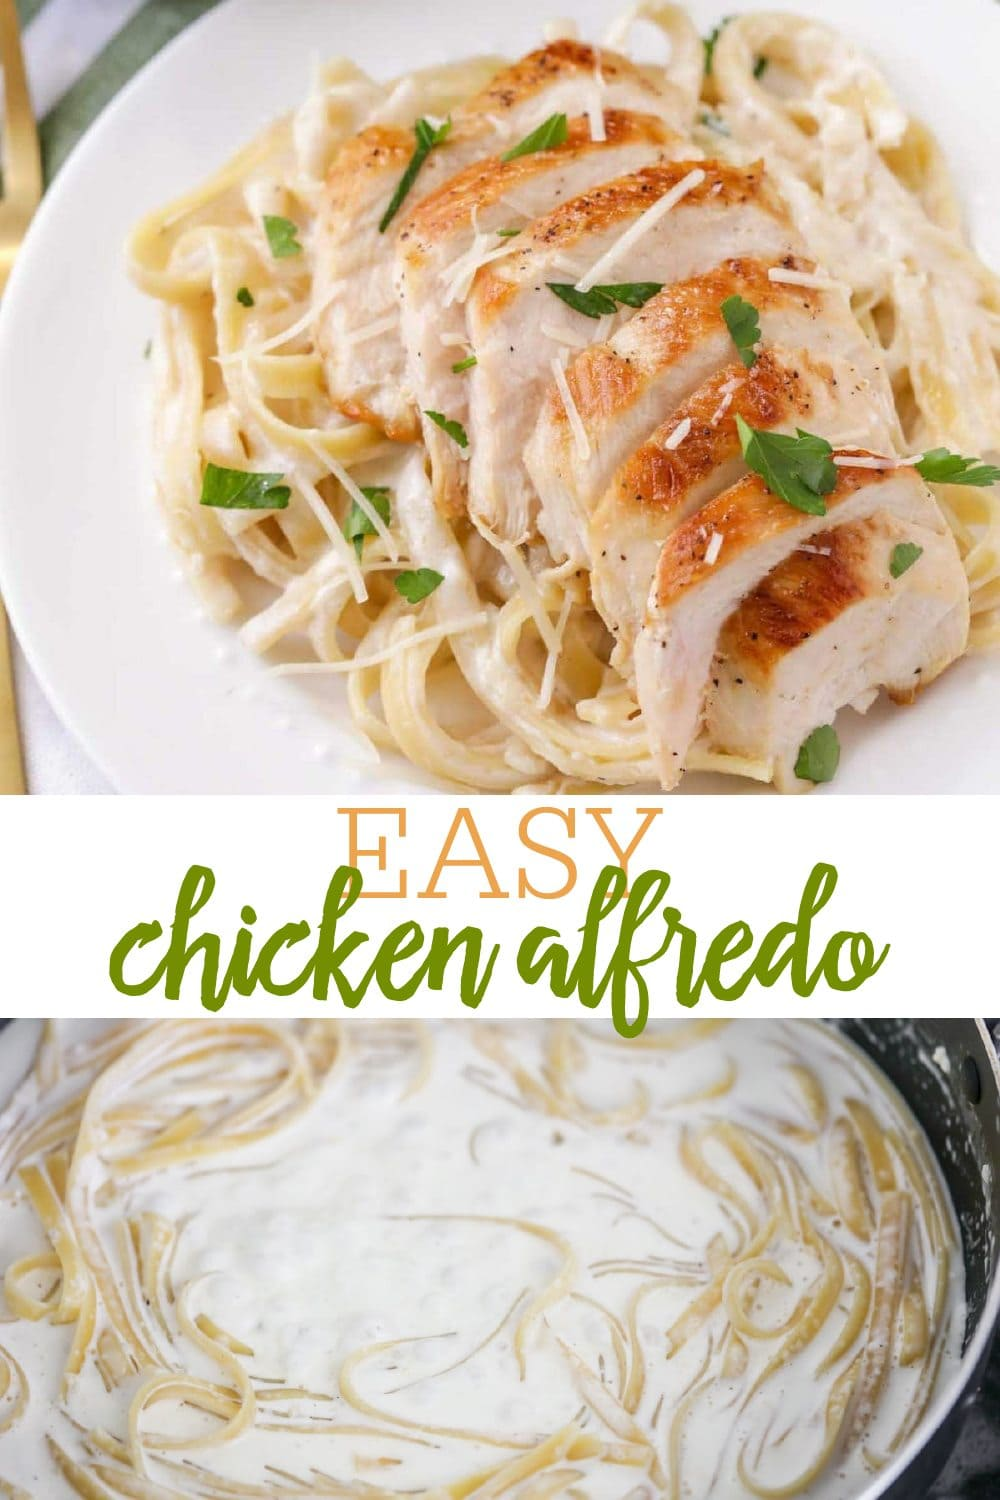 Chicken Alfredo with Fettuccine noodles on white plate